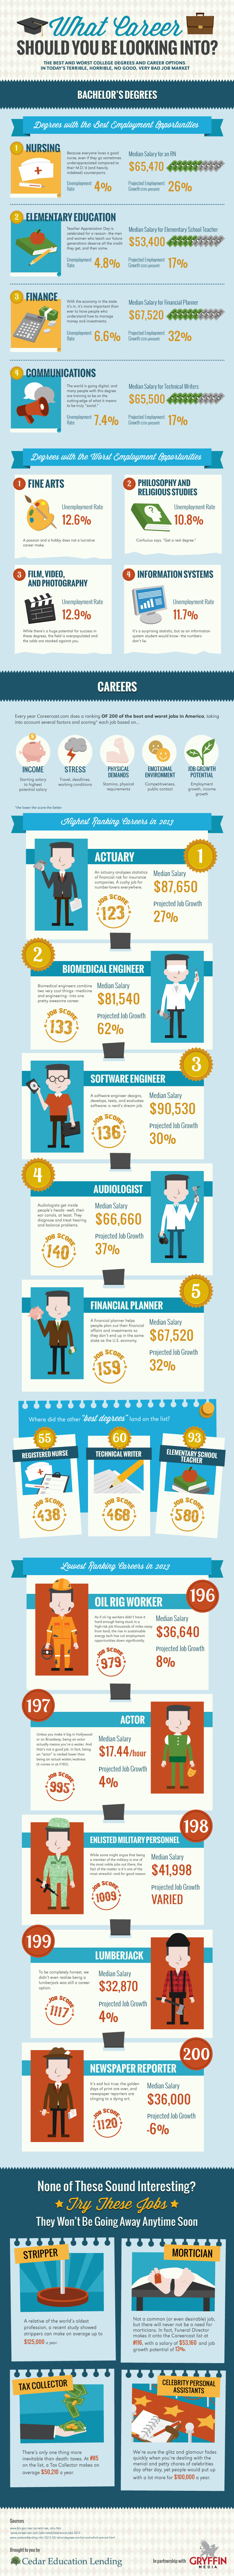 Best and Worst Careers